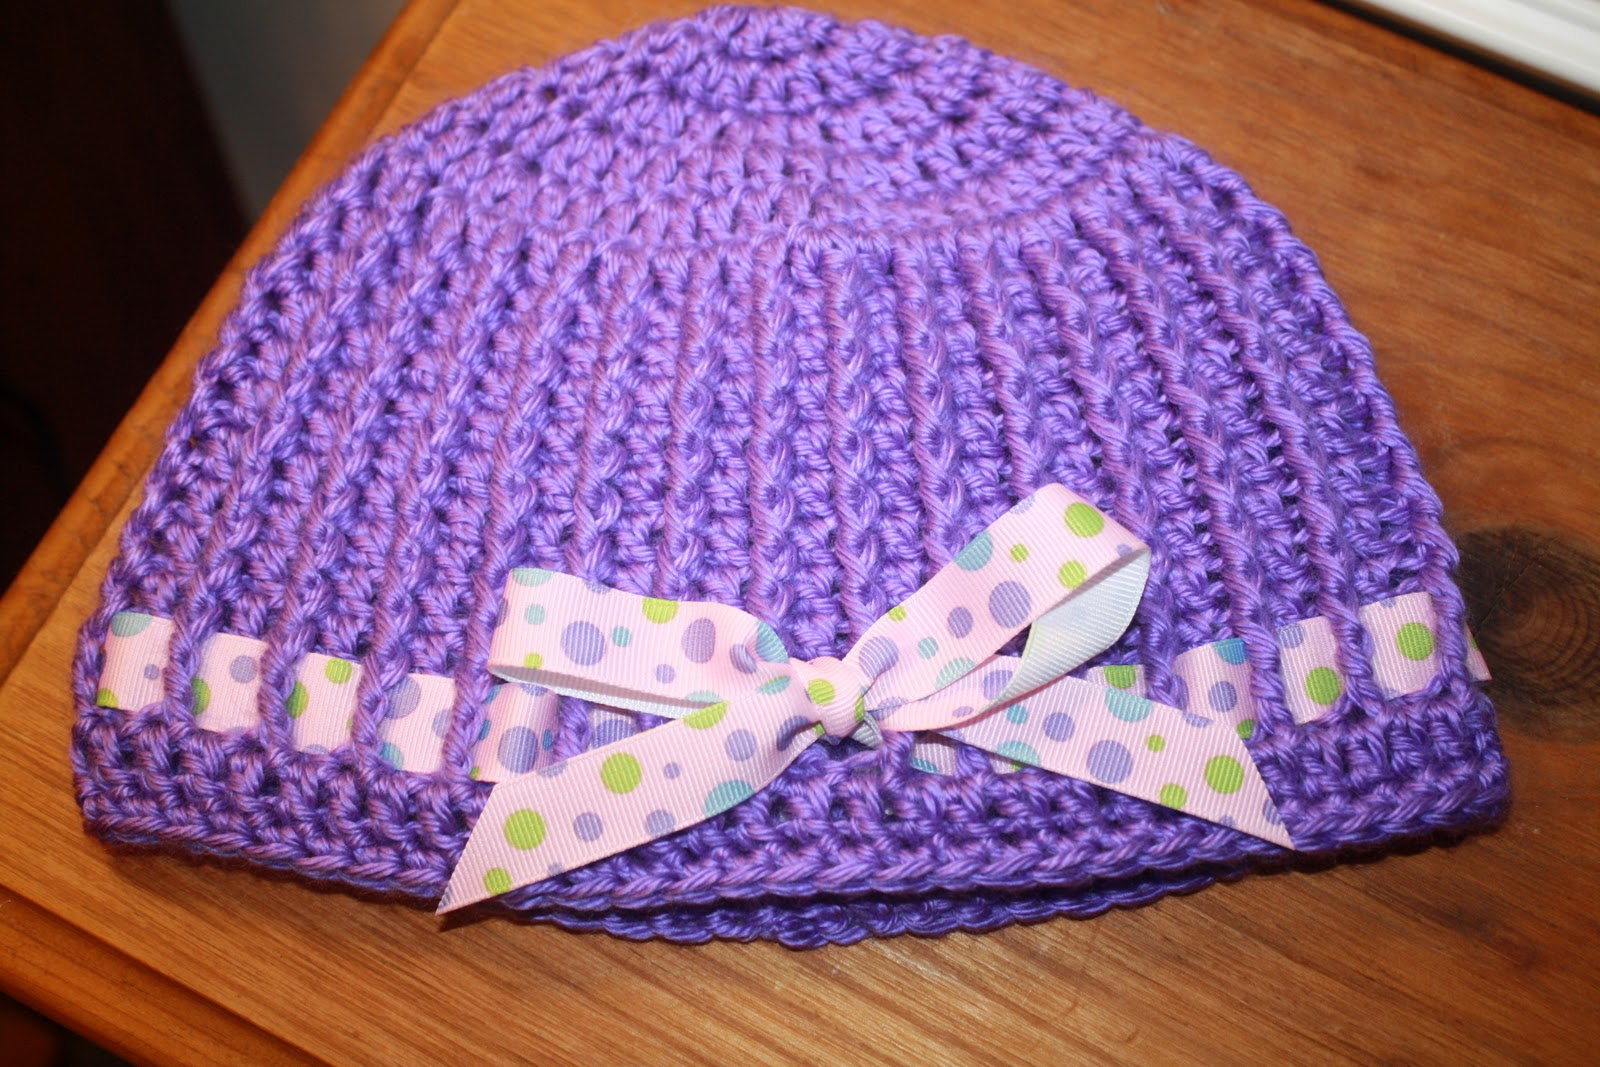 Free Crochet Hat Pattern With Bow : CroCreations: Tutorial for the Hat with a Bow